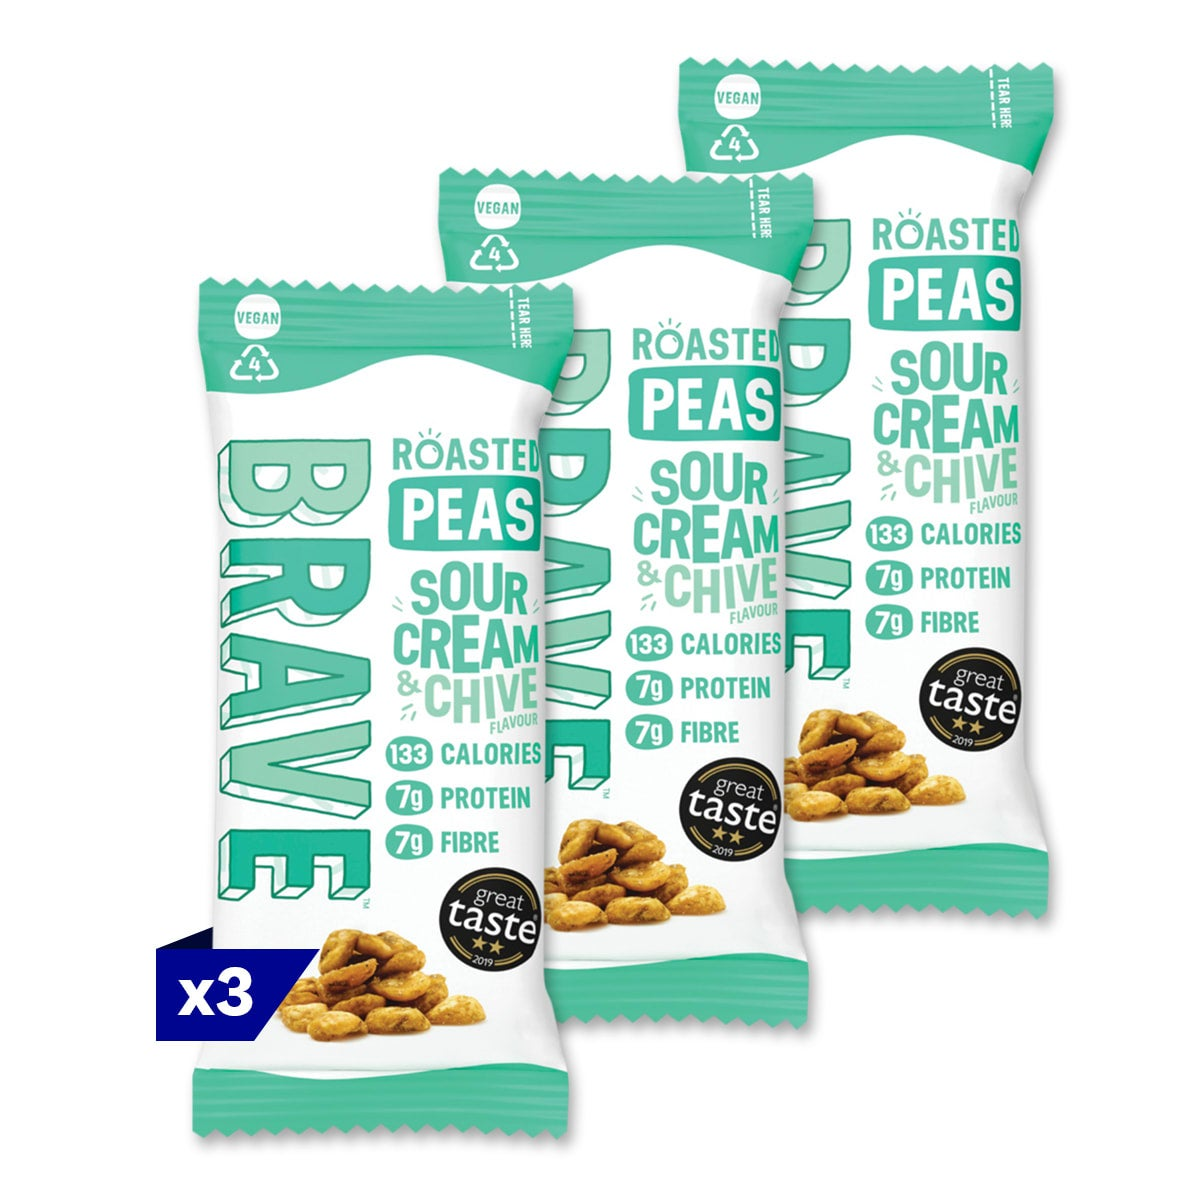 3 packs, Brave Sour Cream & Chive Peas, 35g, full of protein and fibre, 4 SmartPoints per bag, suitable for vegans